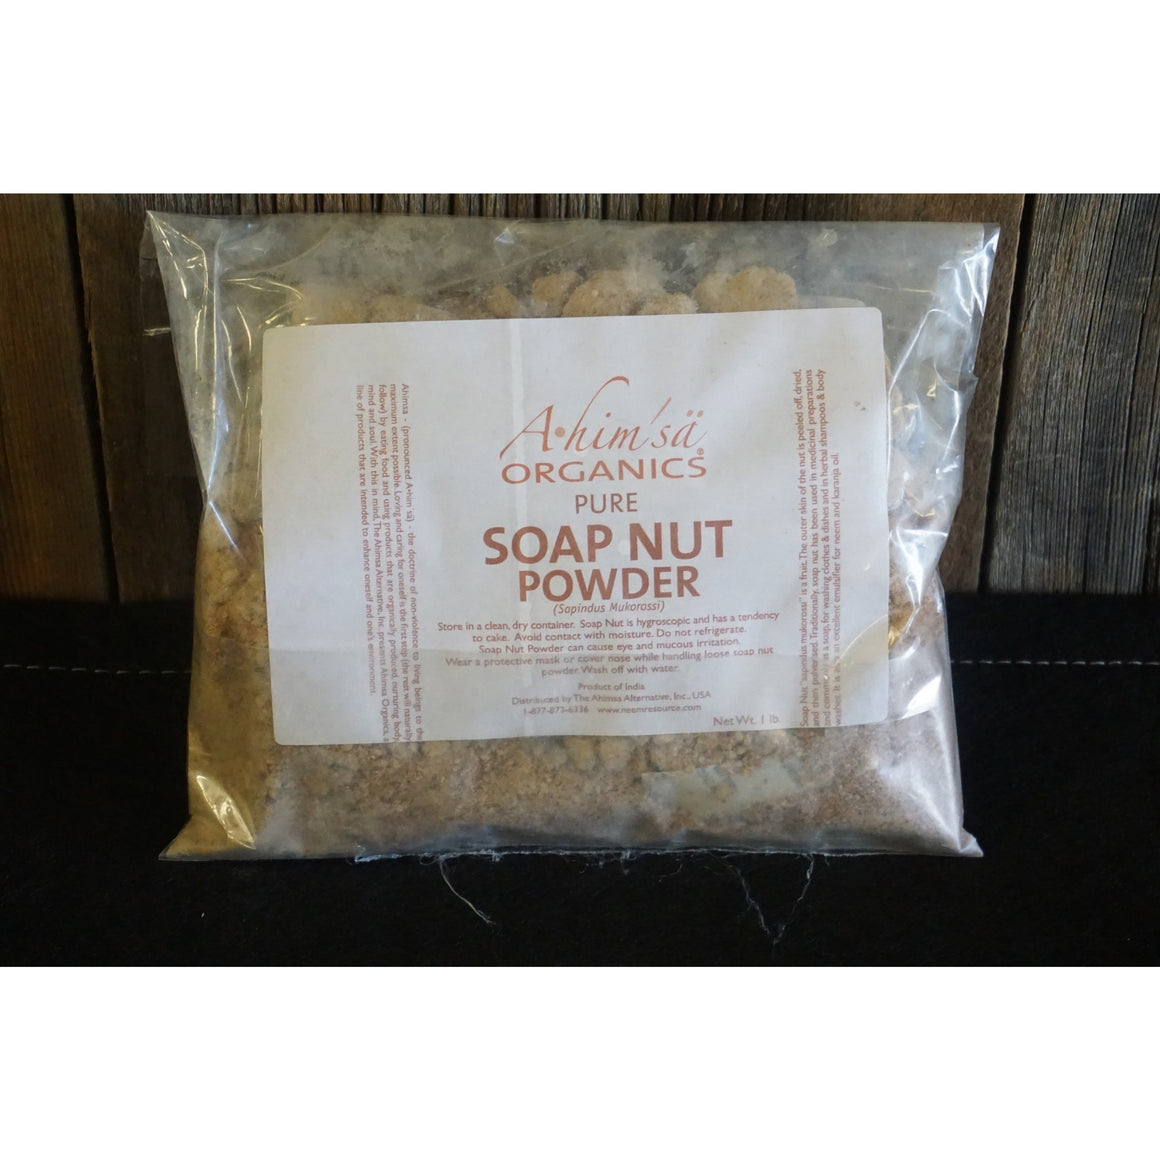 Soap Nut Powder - All Natural Saponin